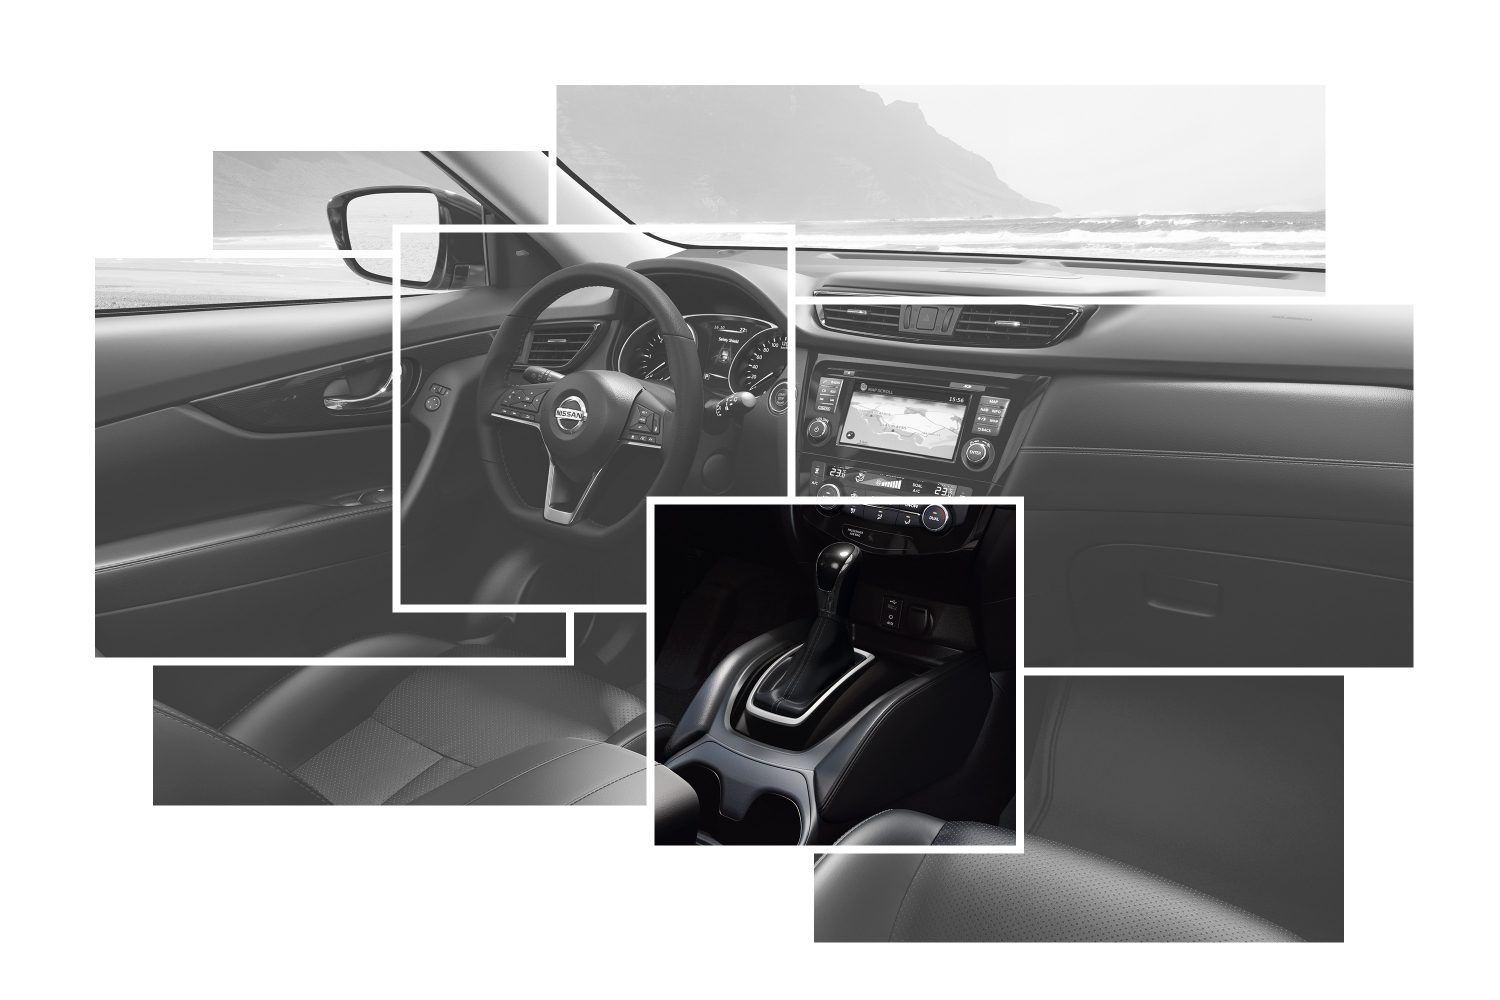 Nissan X-Trail Interior Design details carousel focus on leather shift boot